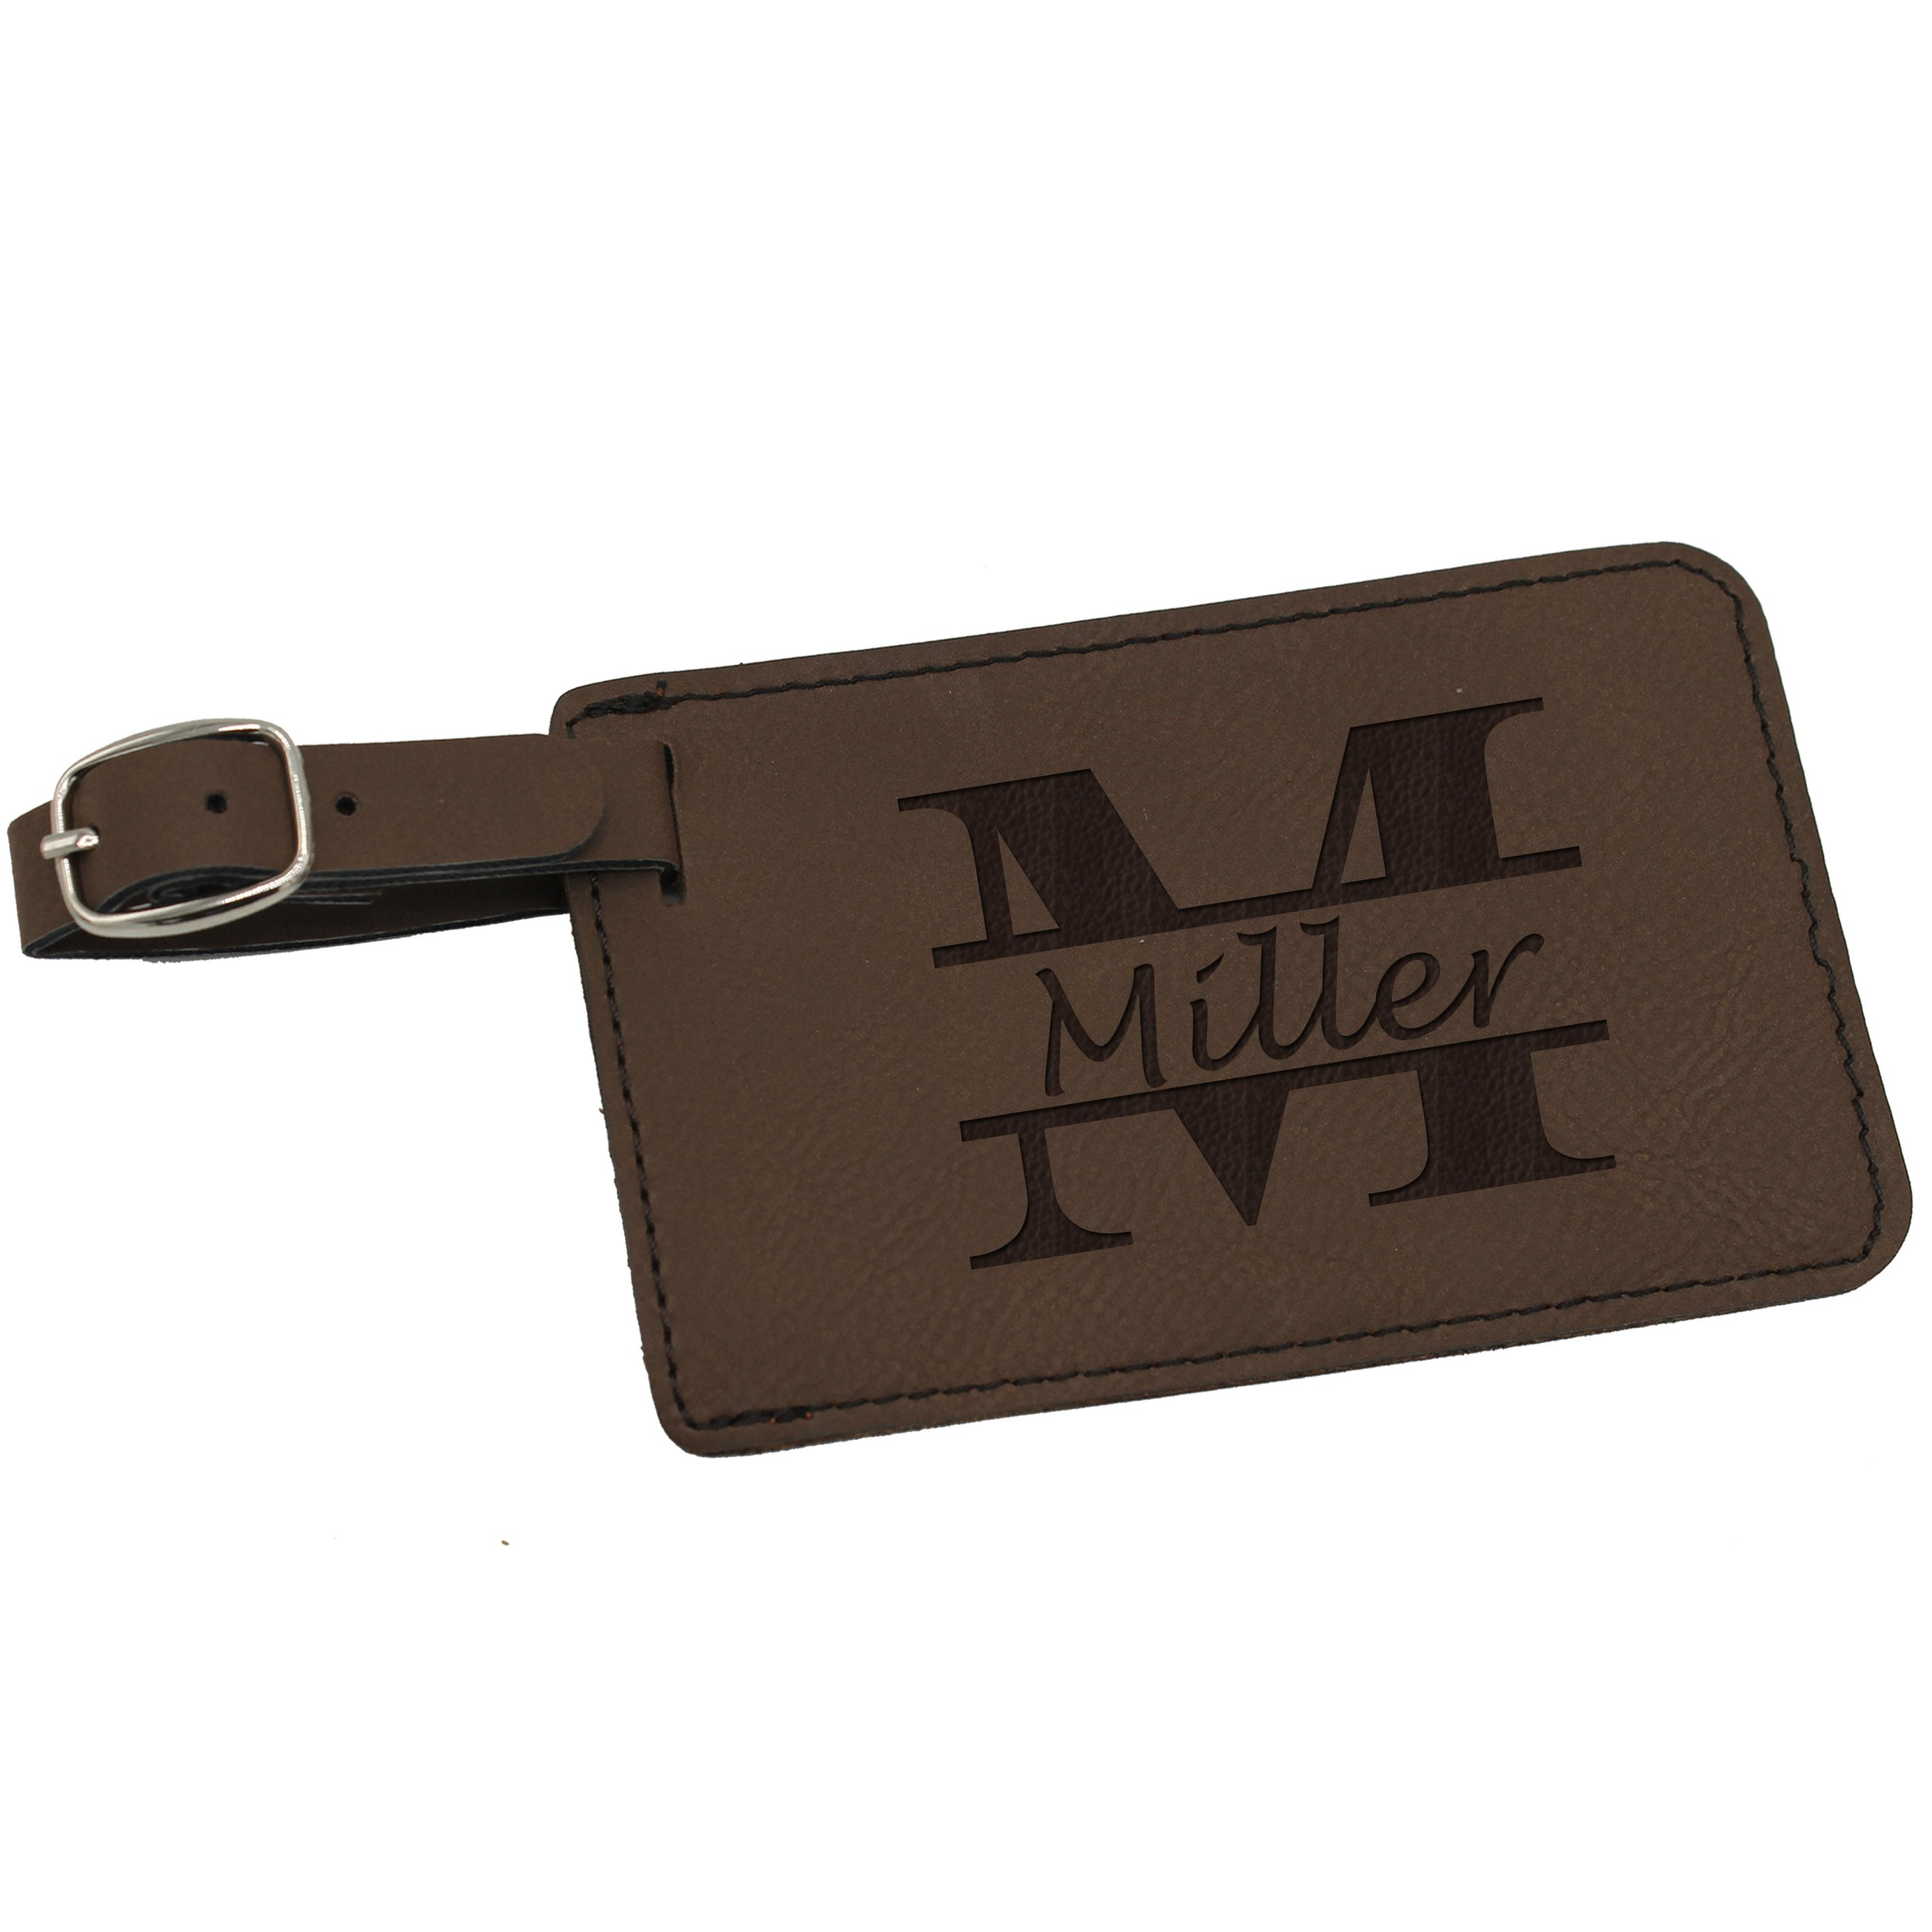 Custom Personalized Luggage Tag - Engraved Travel Gifts - Monogrammed for Free (Brown)